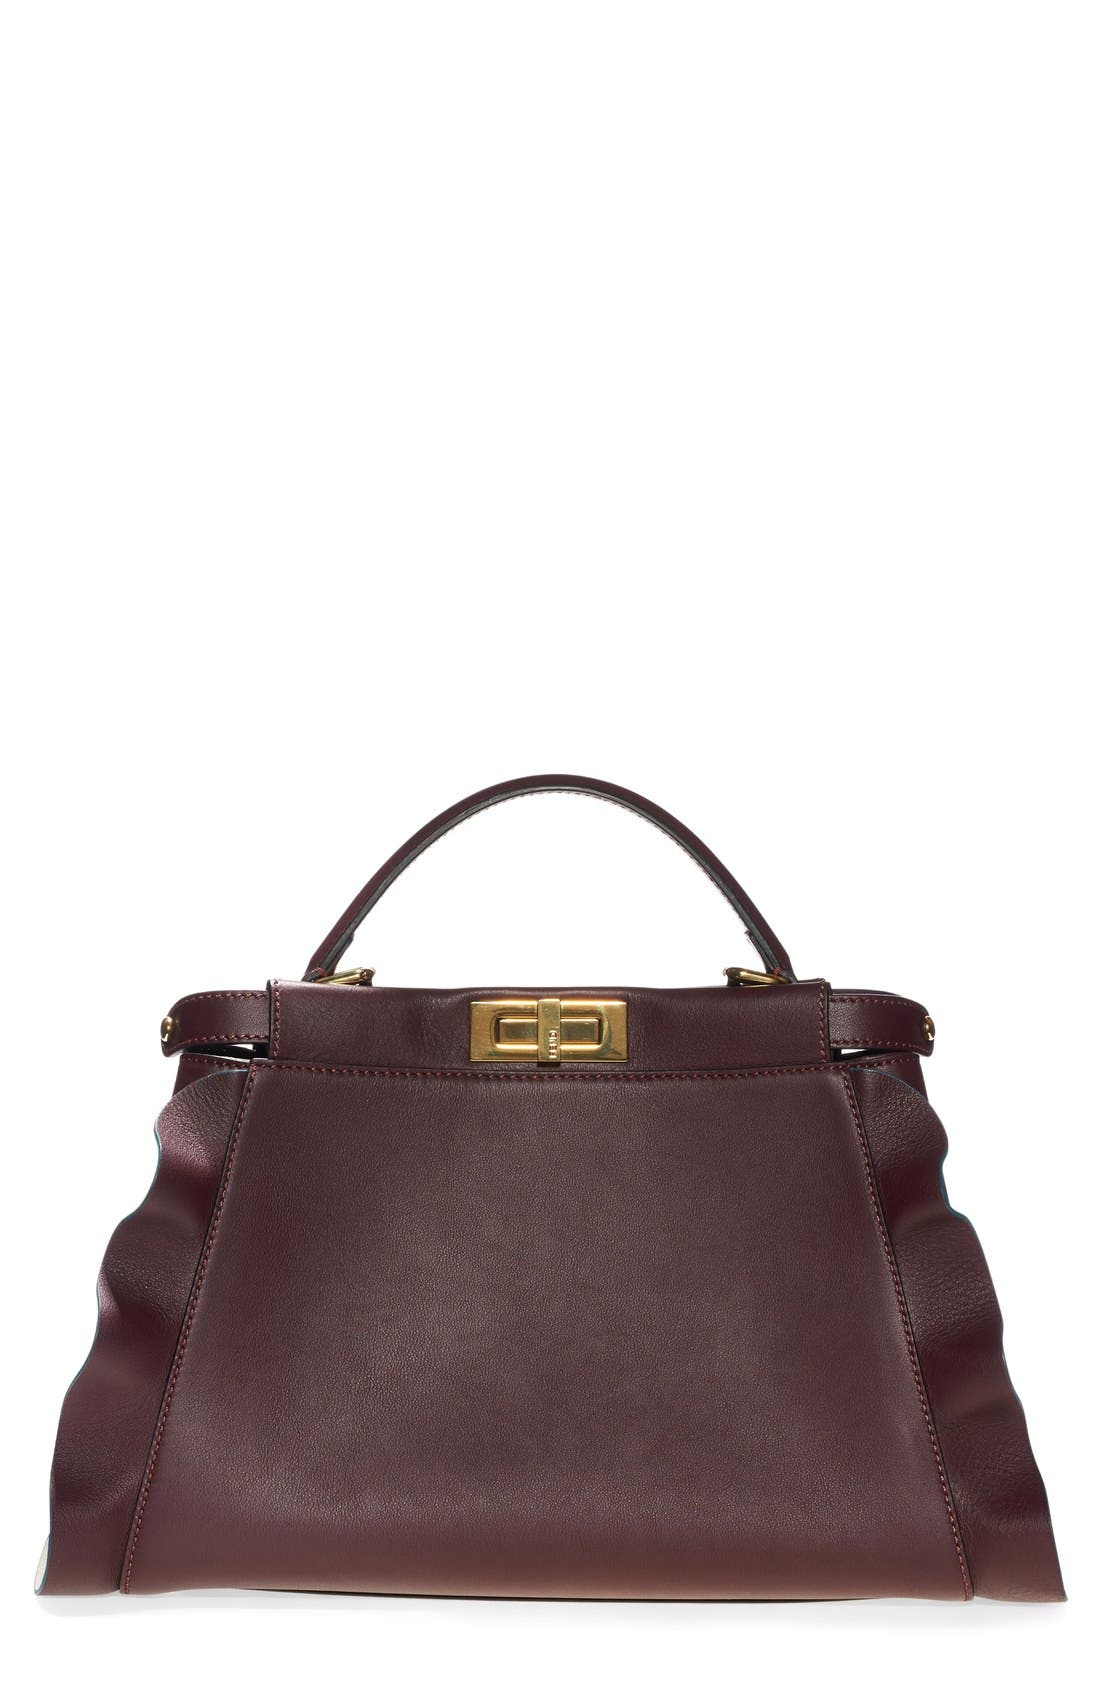 'Medium Peekaboo - Wave' Leather Bag,                             Main thumbnail 1, color,                             Bordeaux/ Milk/ Soft Gold